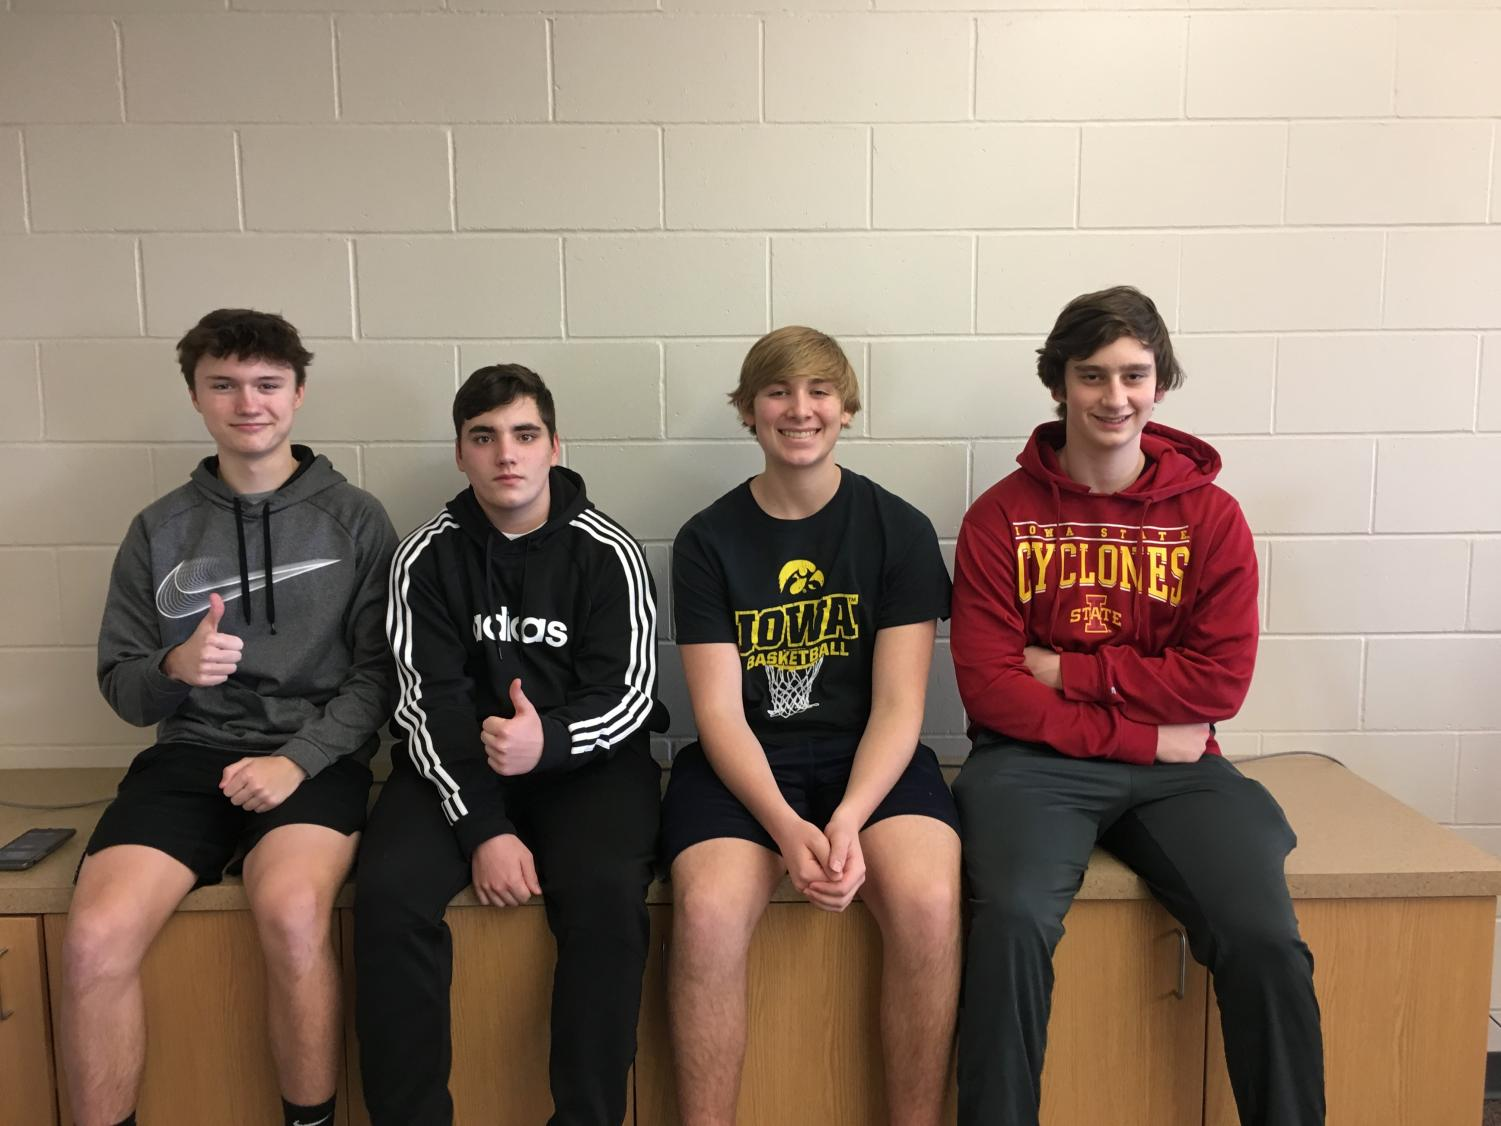 Brody Ulch, Aden Locke, Adam Deeb, and Jack Drahos